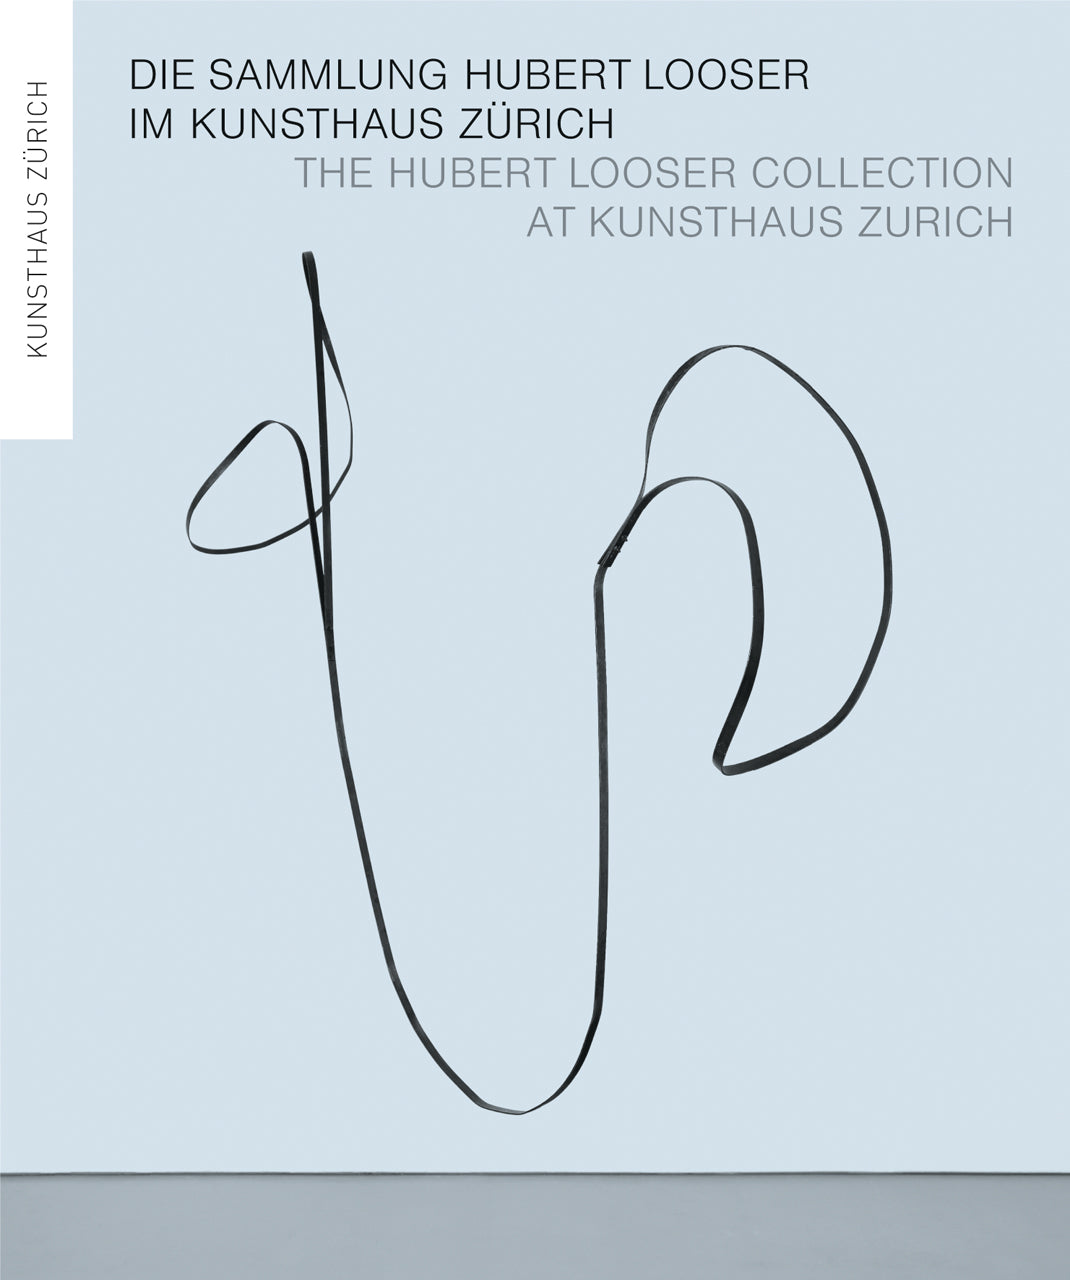 Hubert Looser Collection at Kunsthaus Zurich